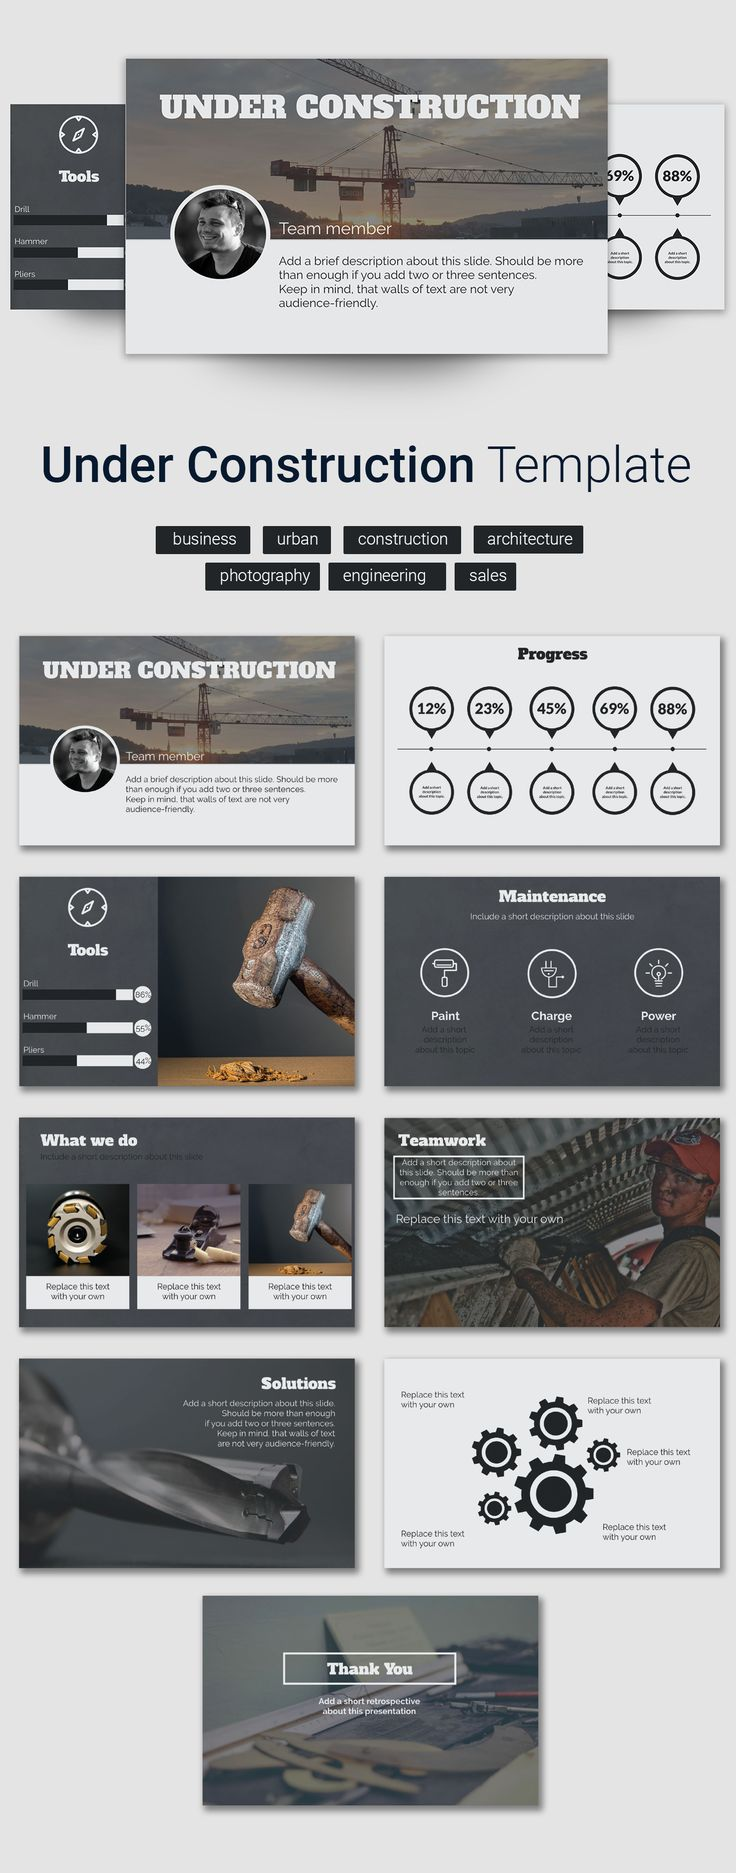 Online business template - PowerPoint presentation templates